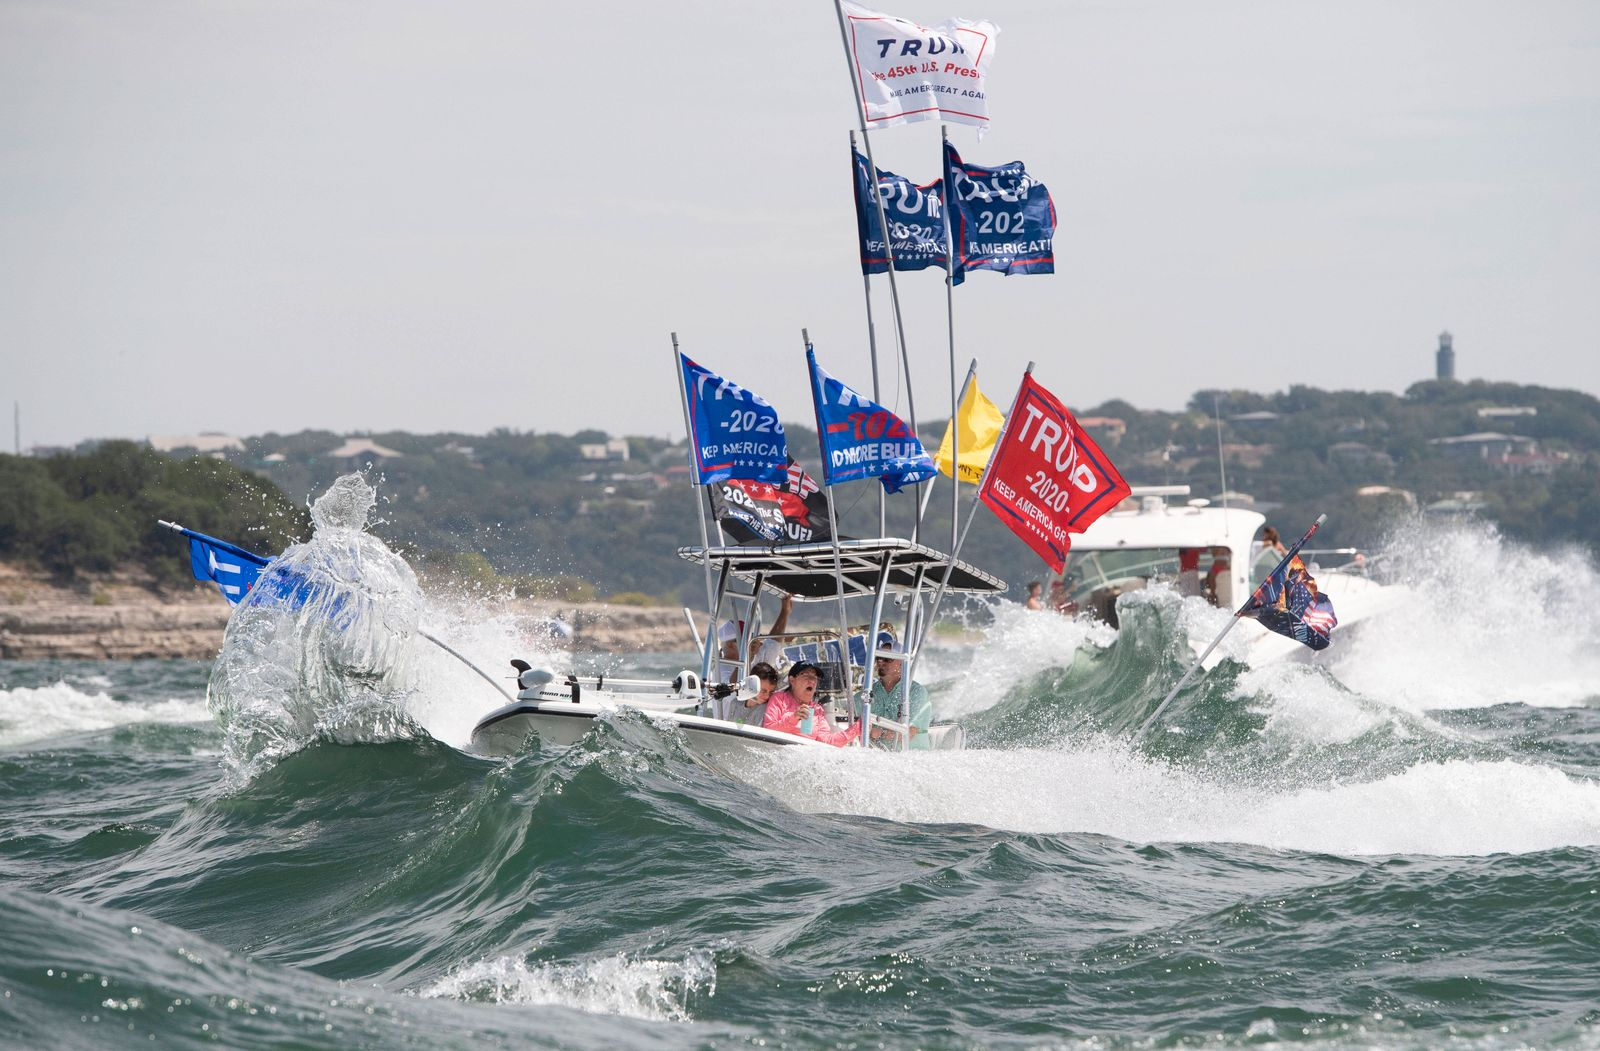 September 5, 2020, Lakeway, Texas, USA: Boats flying flags honoring President Donald Trump crowd Lake Travis during a bo